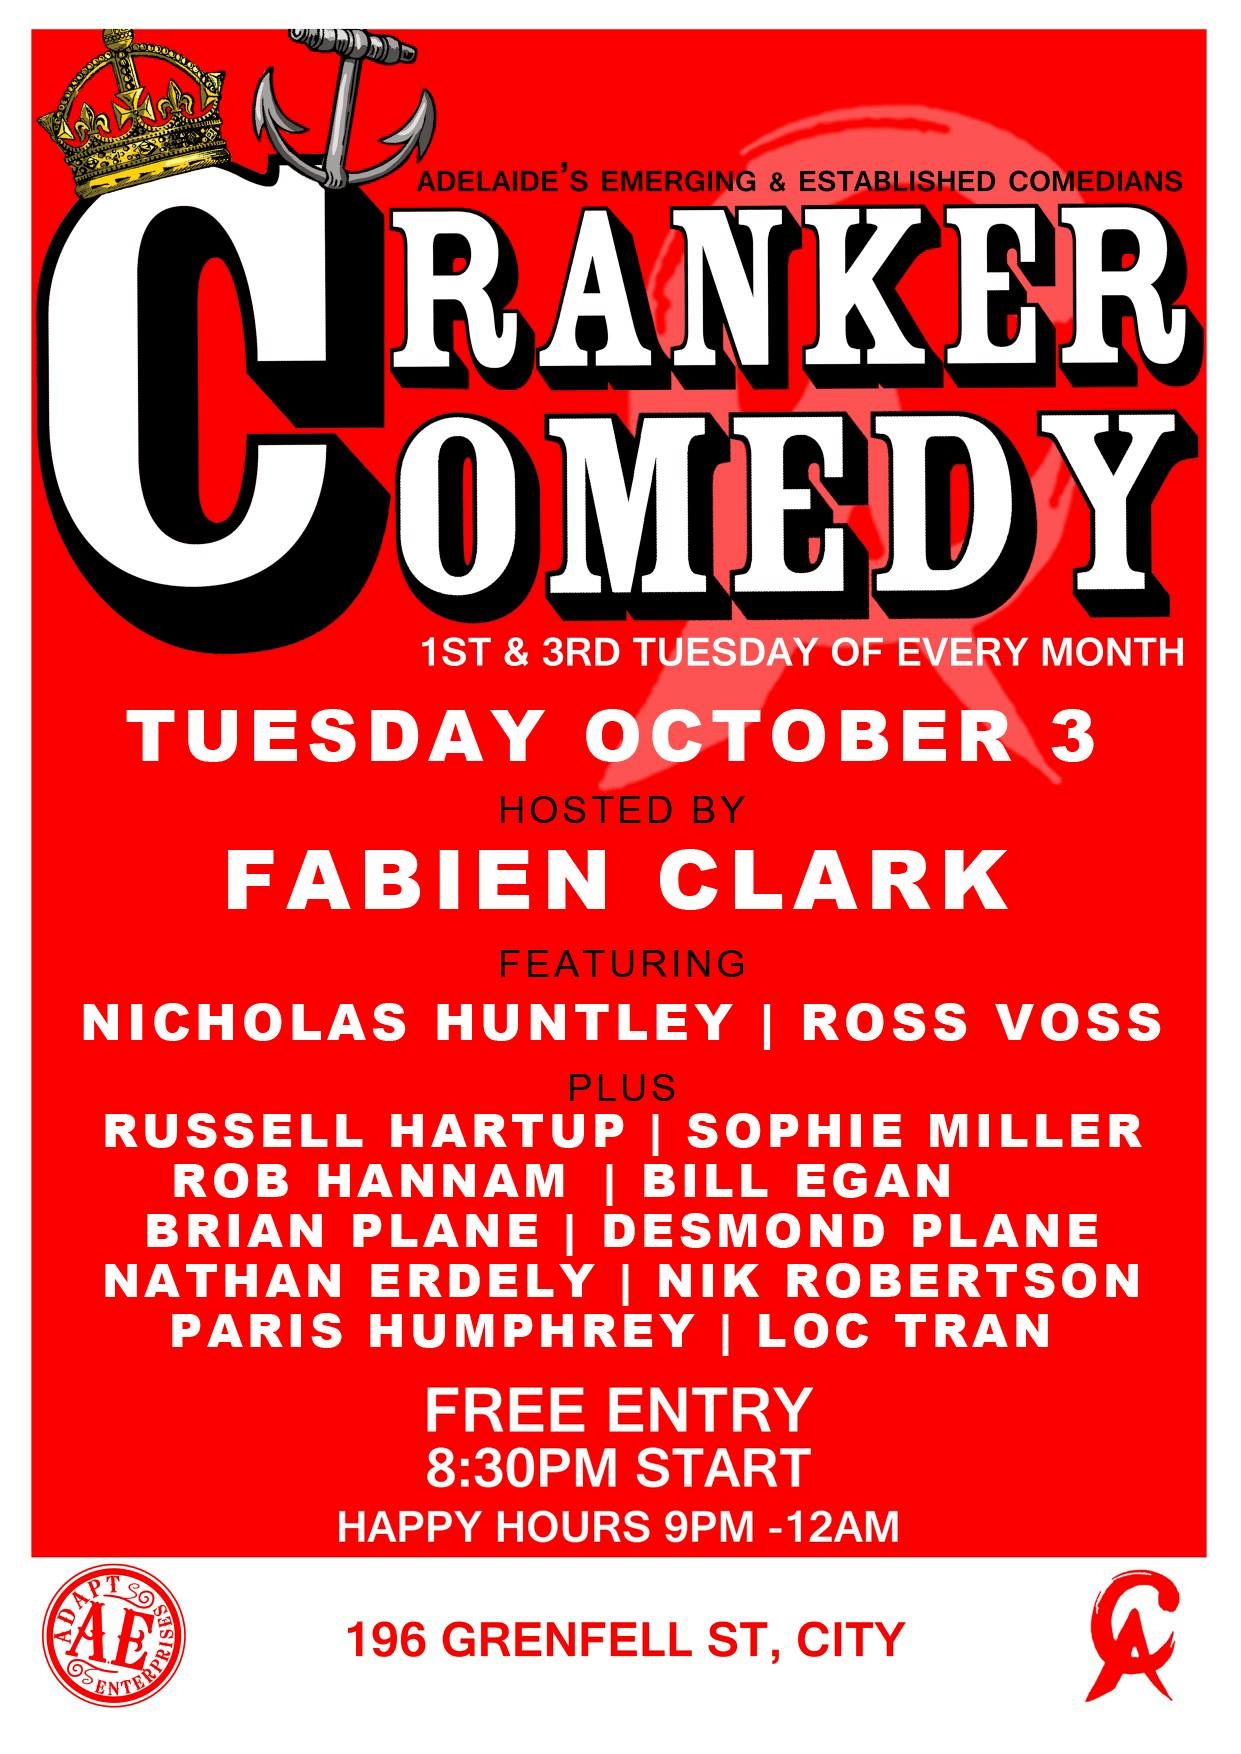 Pleased to be trying out some new material at Cranker Comedy on Tuesday the 3rd of October 2017...